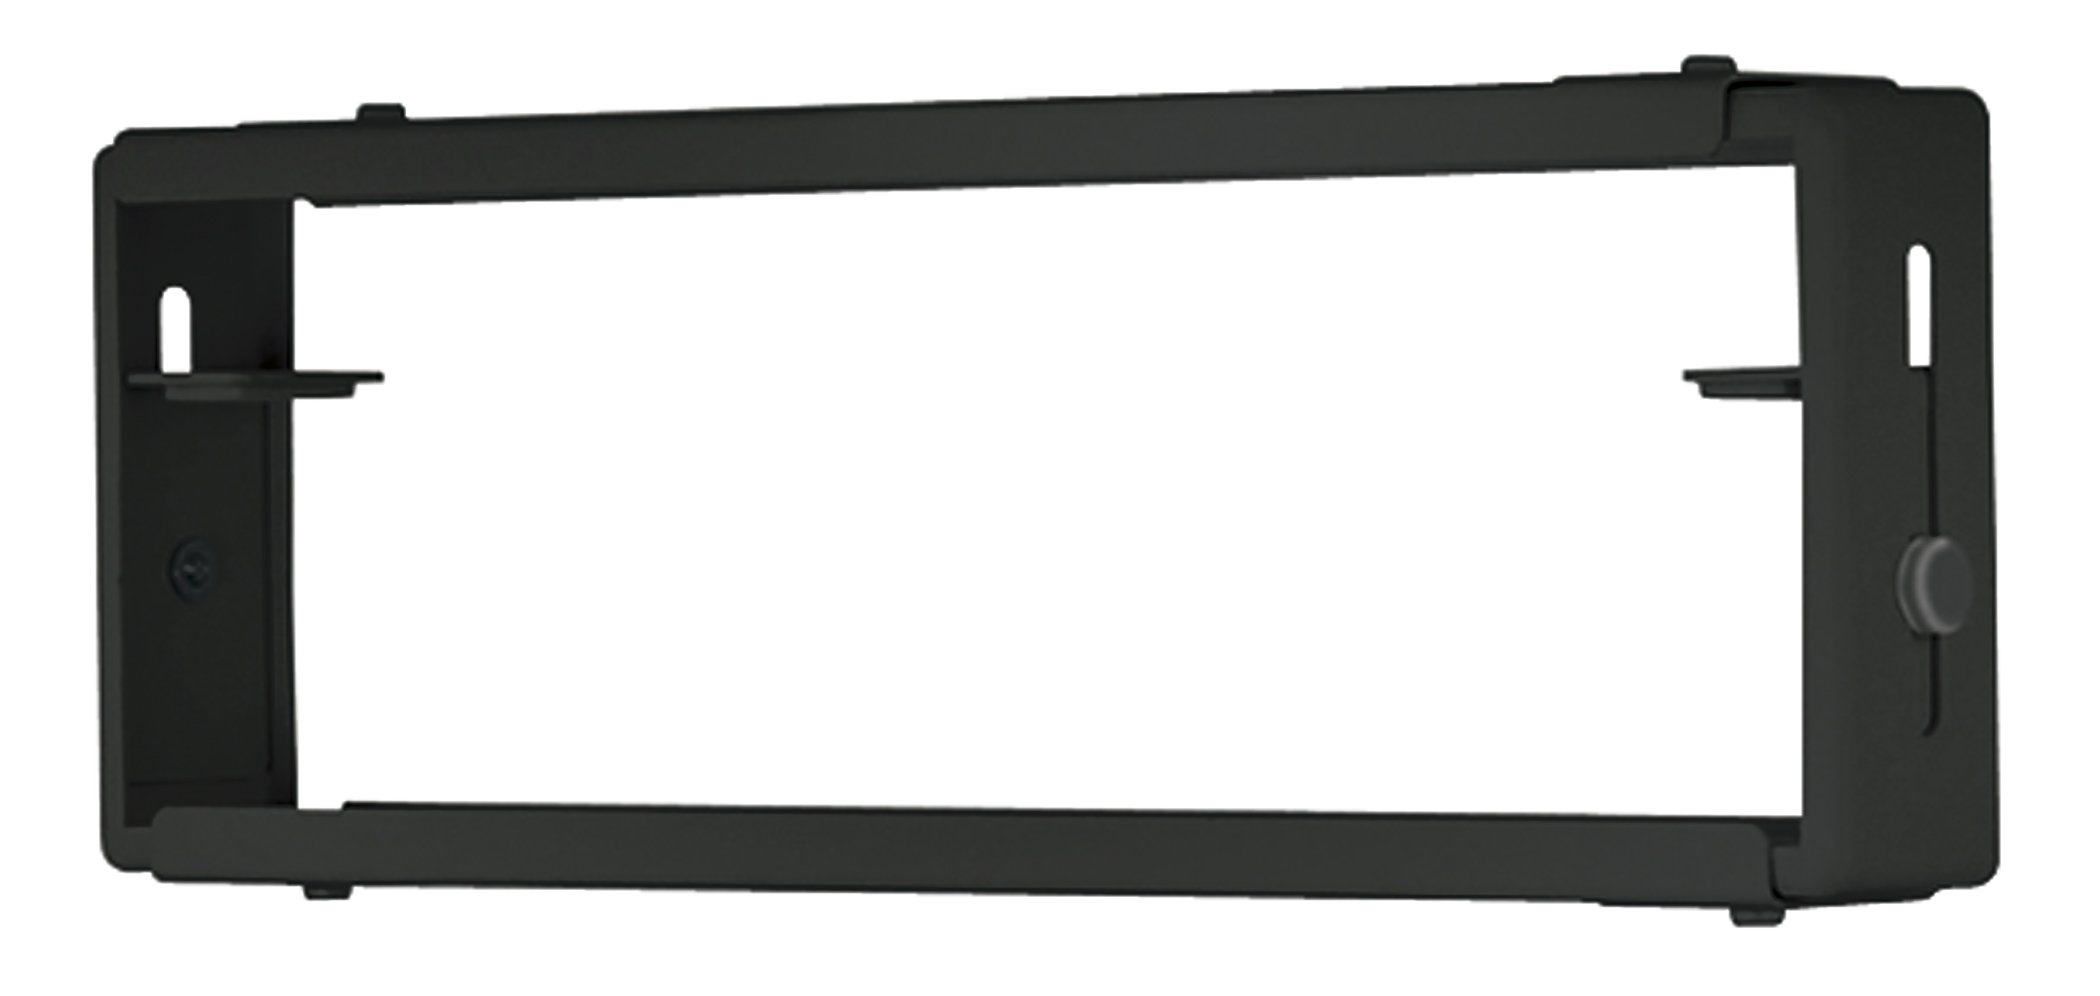 Victory Multimedia 31121 Orbital VCR/DVD Stackable Mount (Black) (Discontinued by Manufacturer)